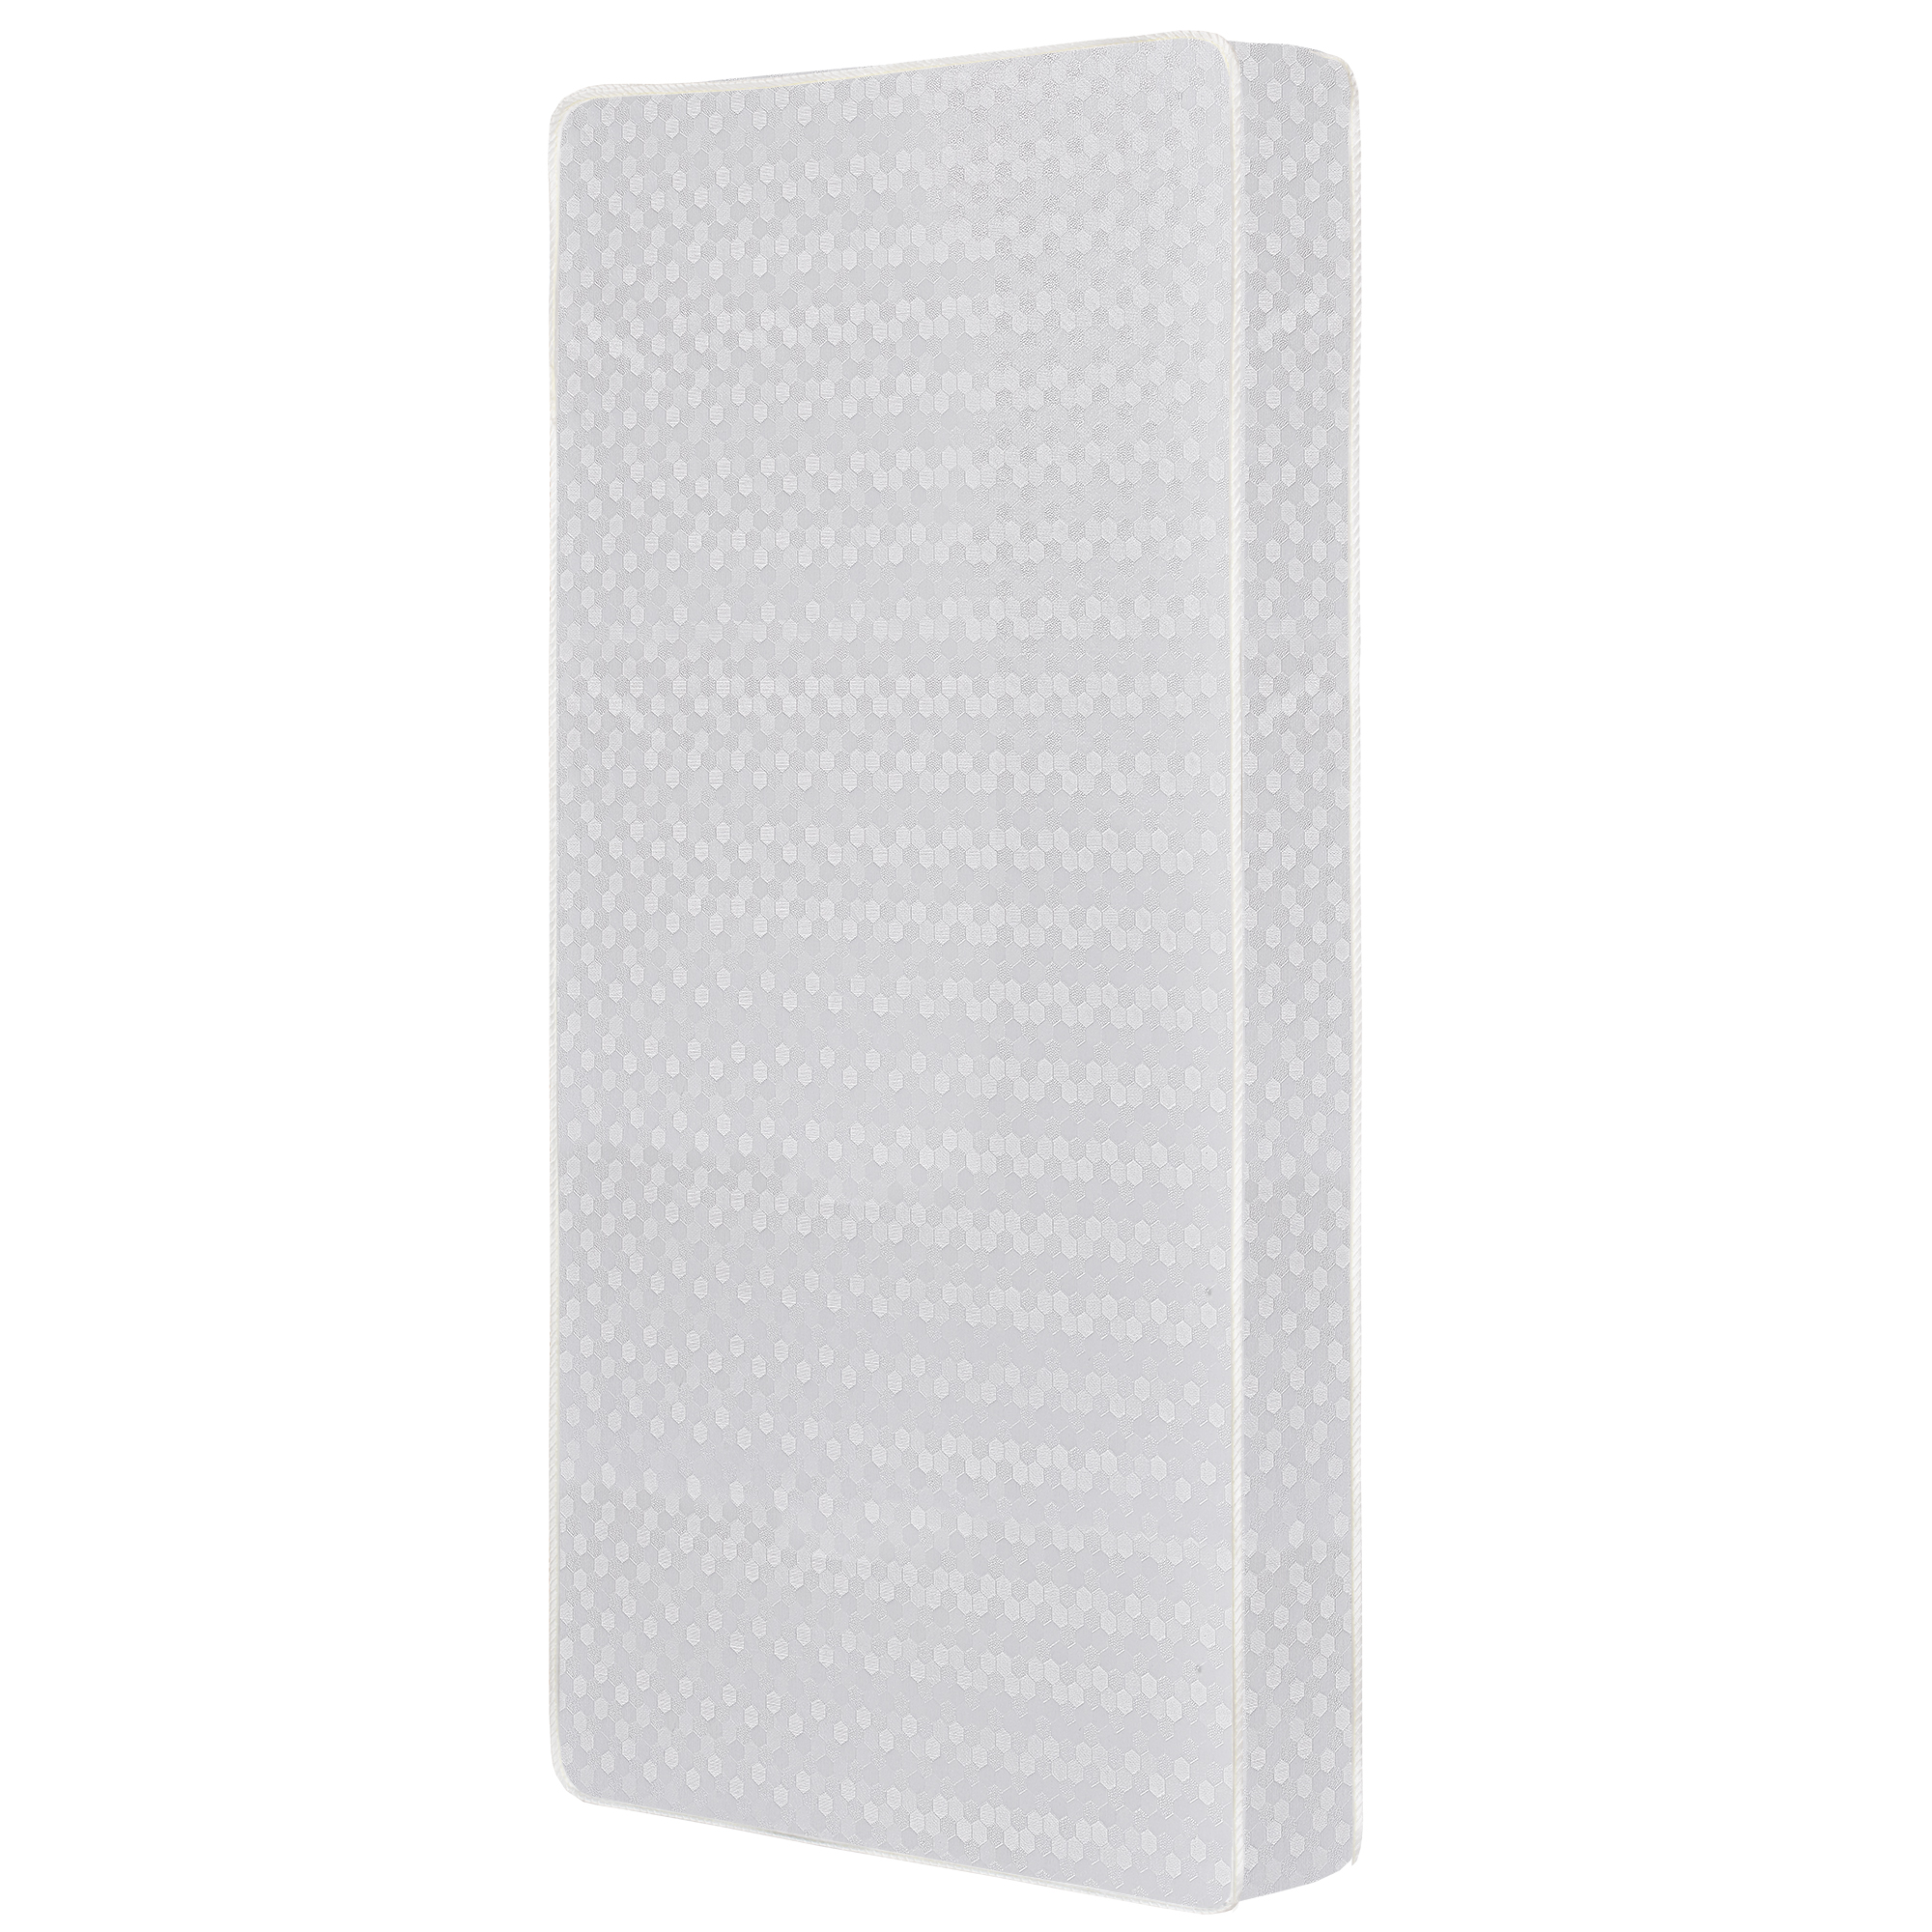 Dream on Me Orthopedic Standard Crib Mattress, Extra Firm Foam by Dream On Me